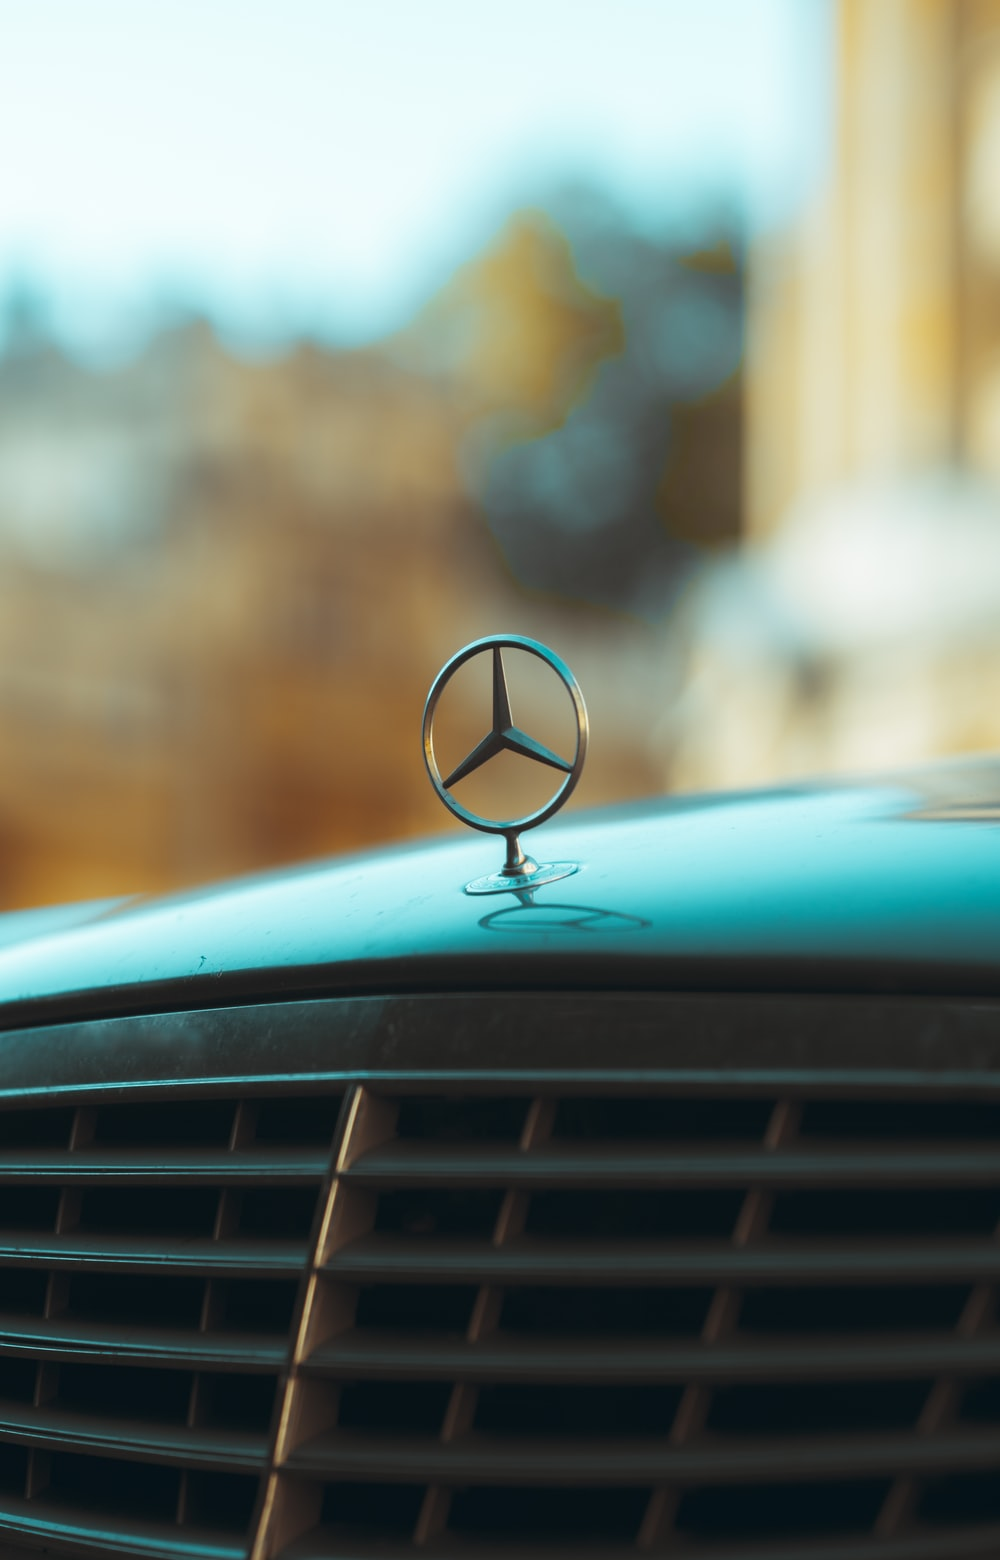 silver mercedes benz car with black and brown heart shaped emblem